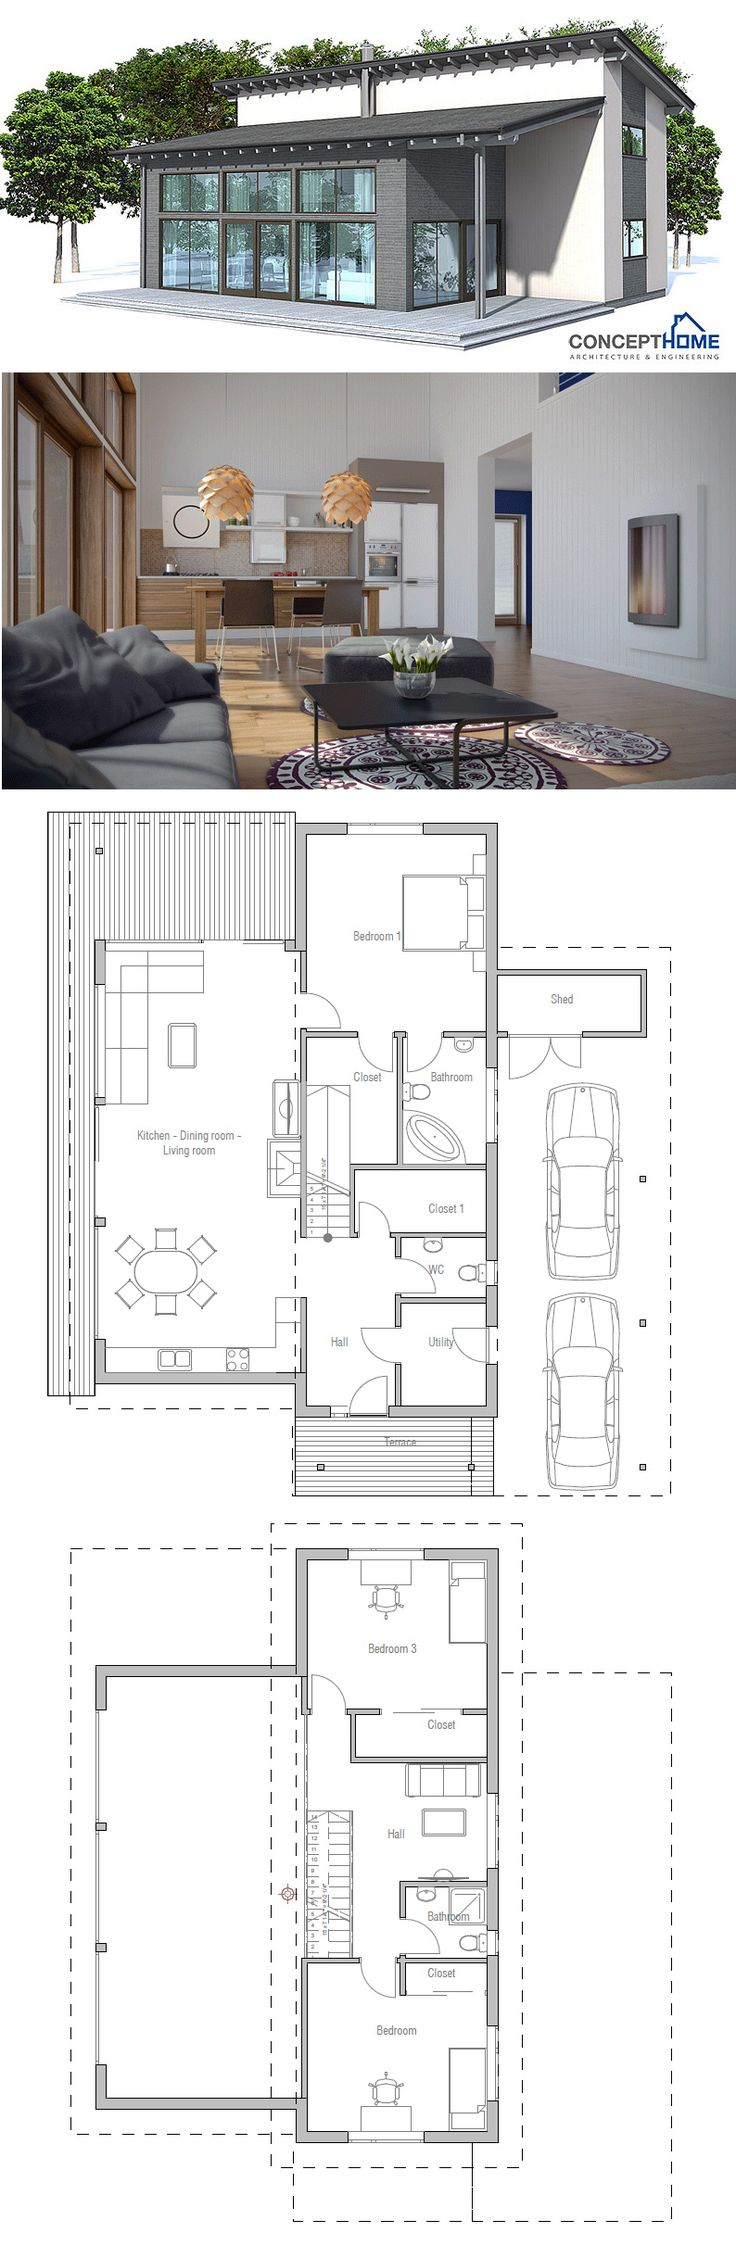 25 best ideas about small house plans on pinterest small home plans small house floor plans and small floor plans